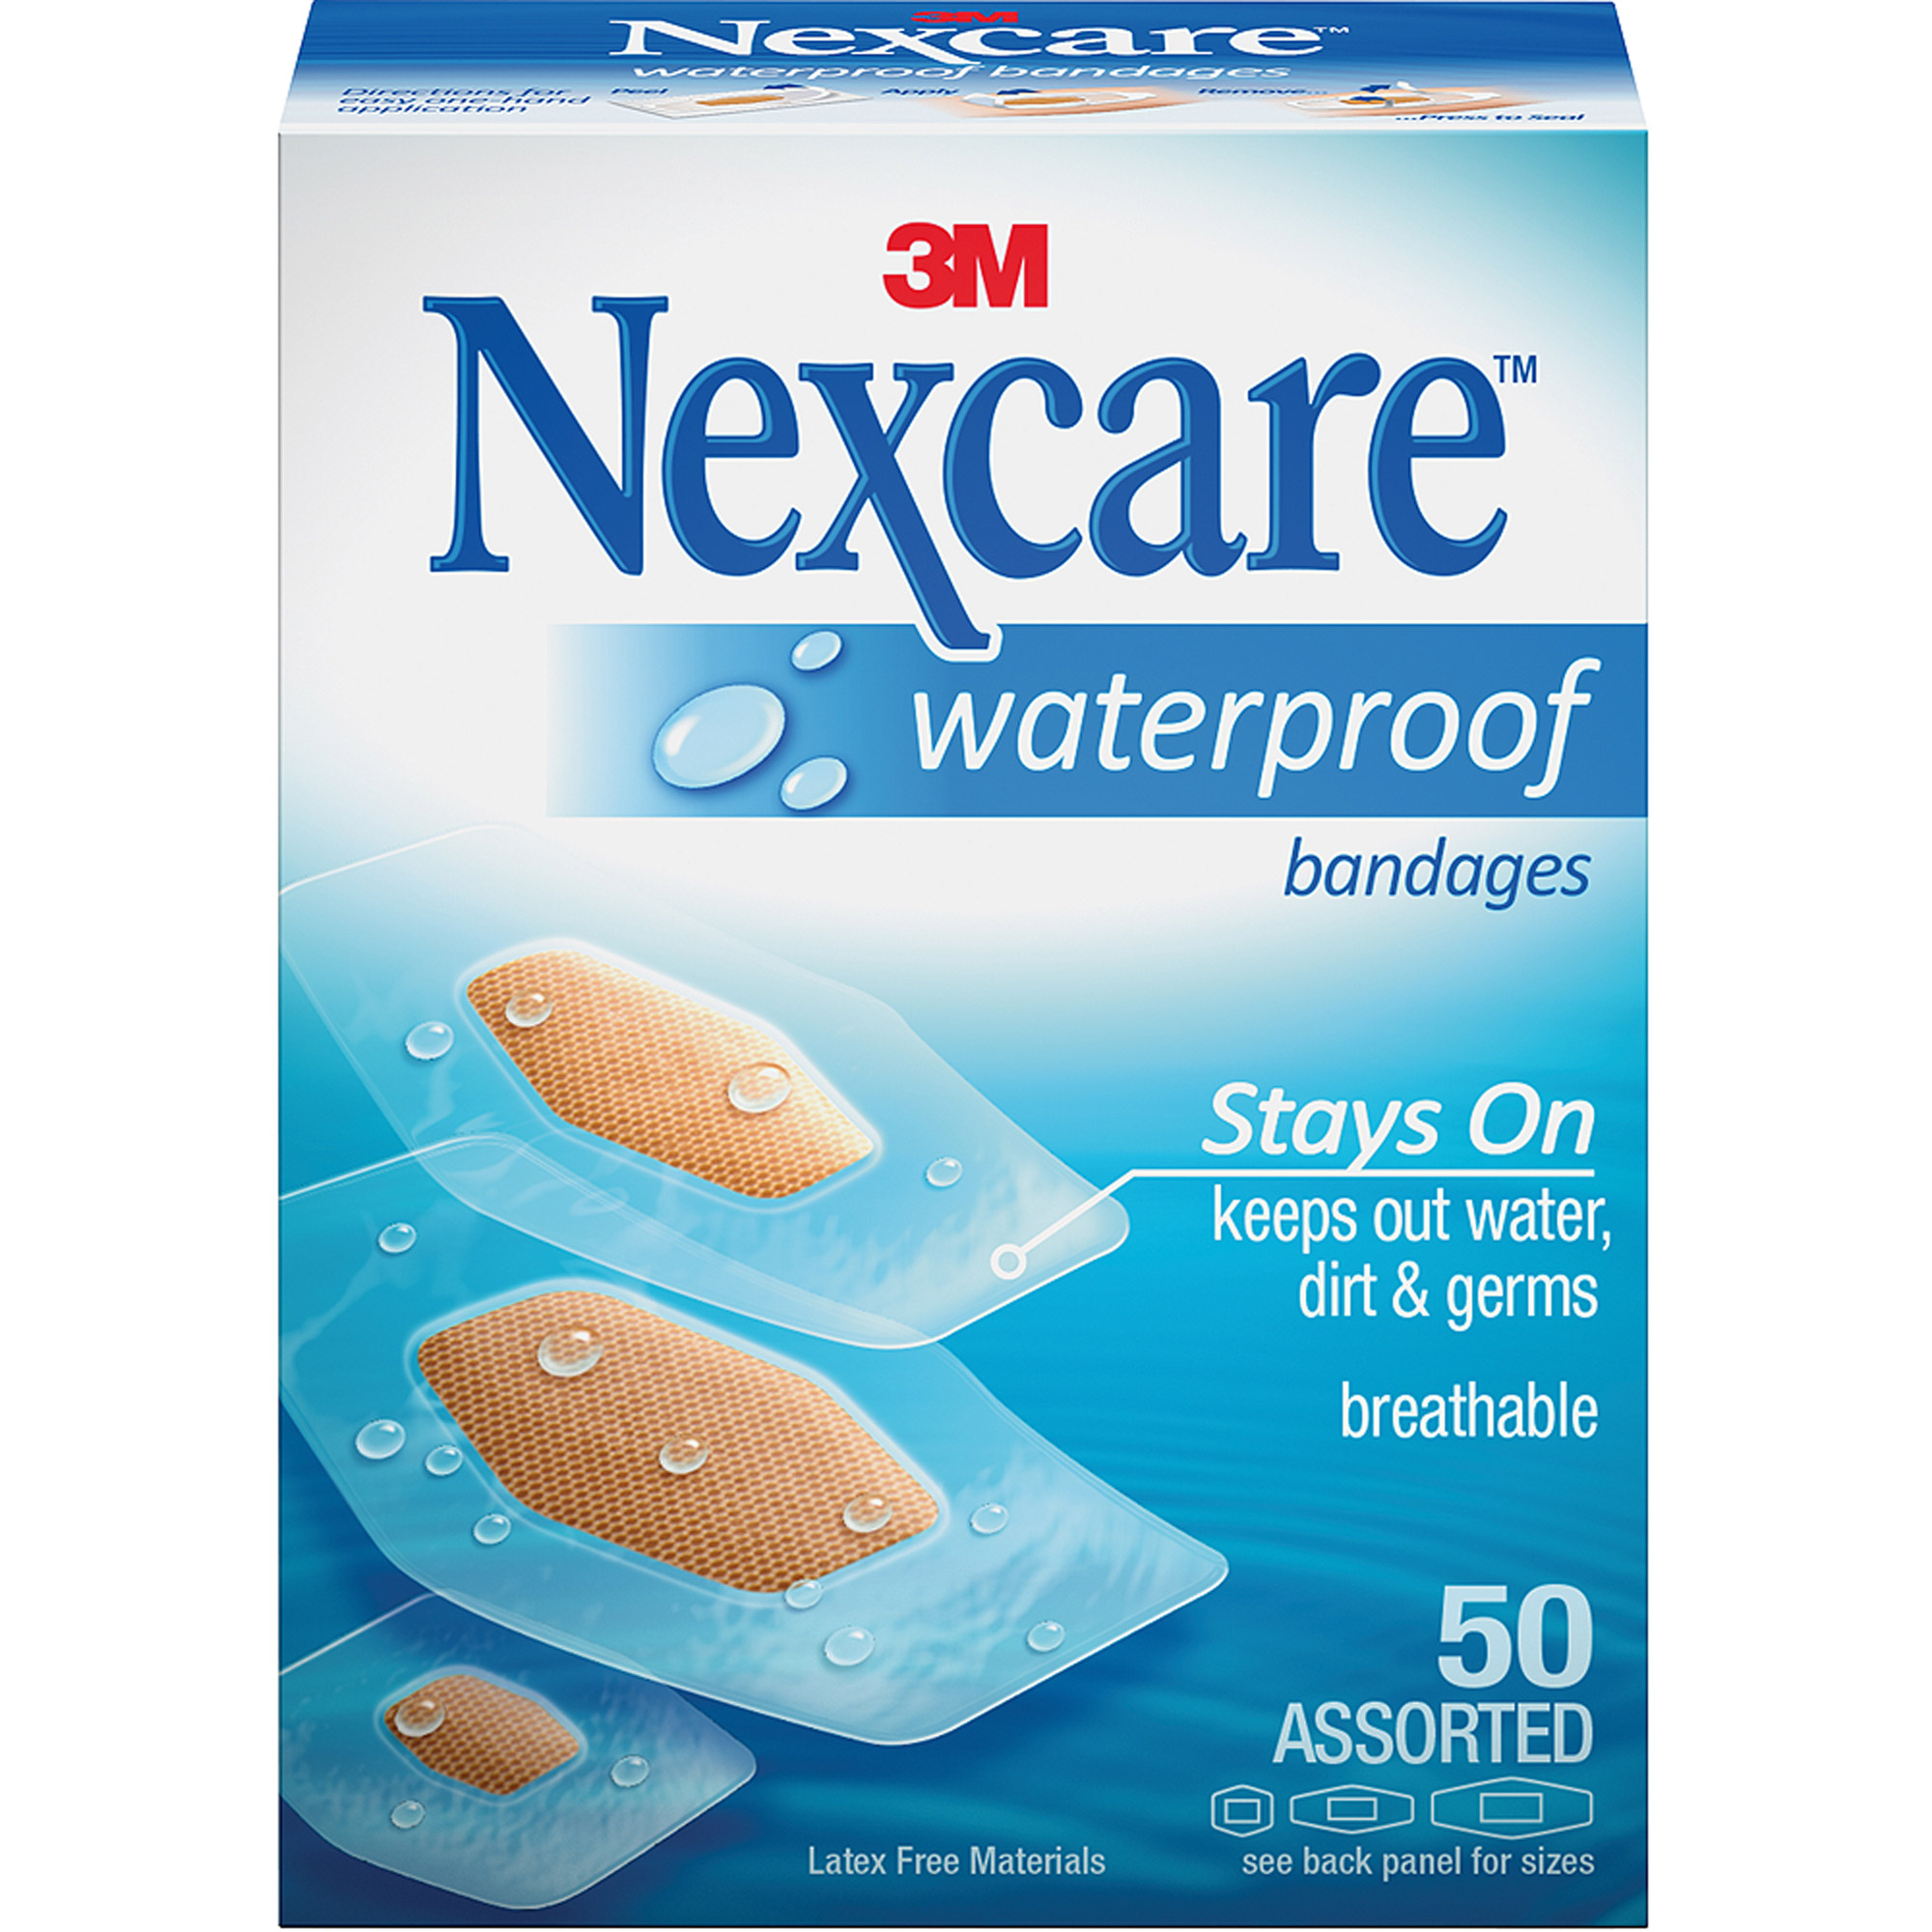 Nexcare Waterproof Clear Assorted Bandages, 50 count